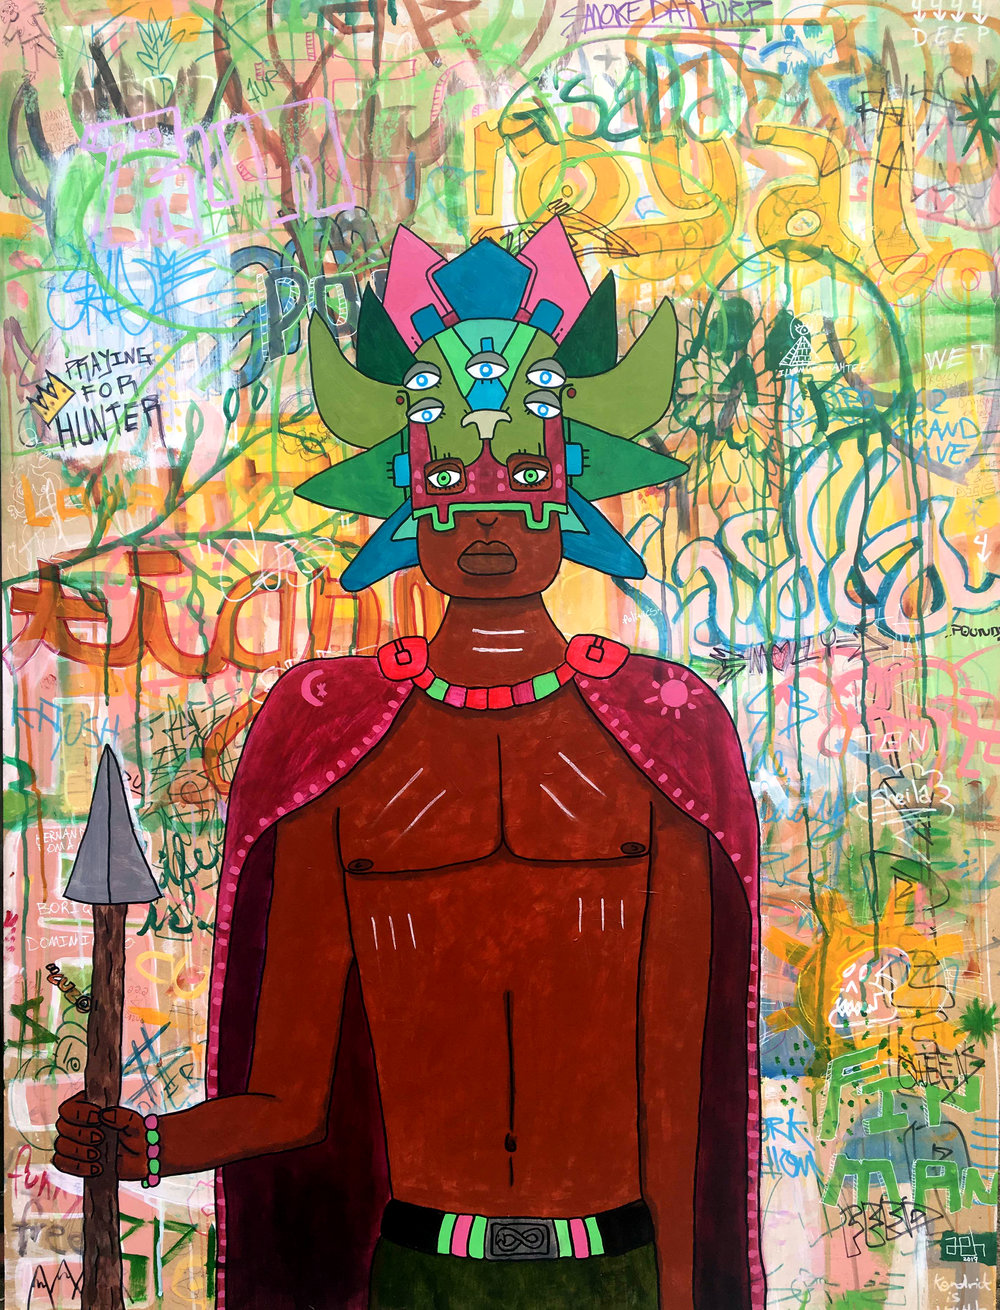 "High Priest Acrylic & Watercolor on MDF 37"" x 49"" 2017  *Please contact adam@ahernandezart.com to purchase"